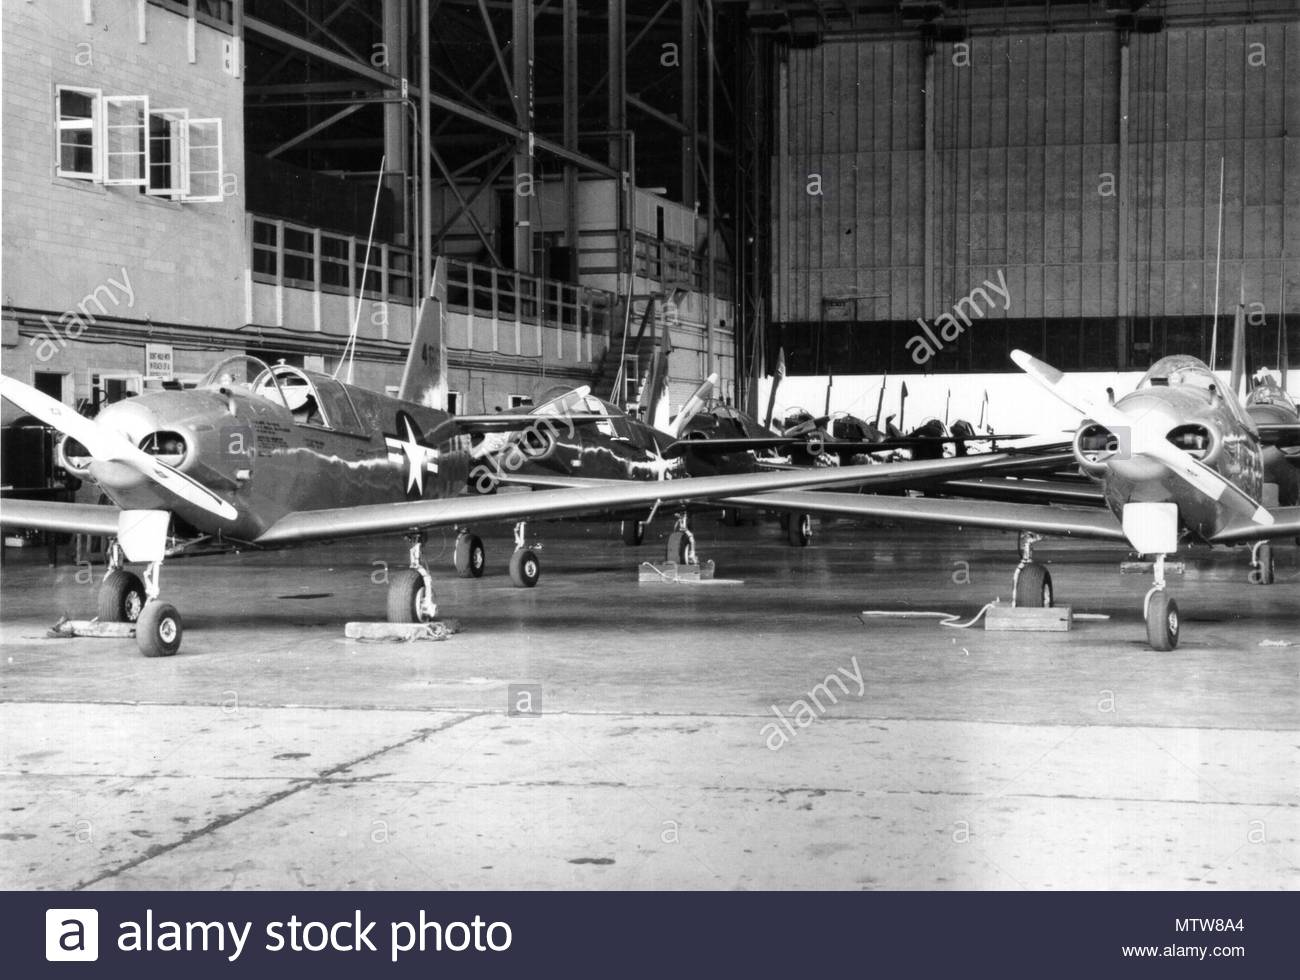 Numerous PQ-14s 'Cadet' aircraft are shown undergoing what appears to be maintenance and inspection checks at Tinker Field, Oklahoma. These checks were routinely conducted during delivery and acceptance review by the Army Air Corps. Courtesy photo Tinker History Office - Stock Image